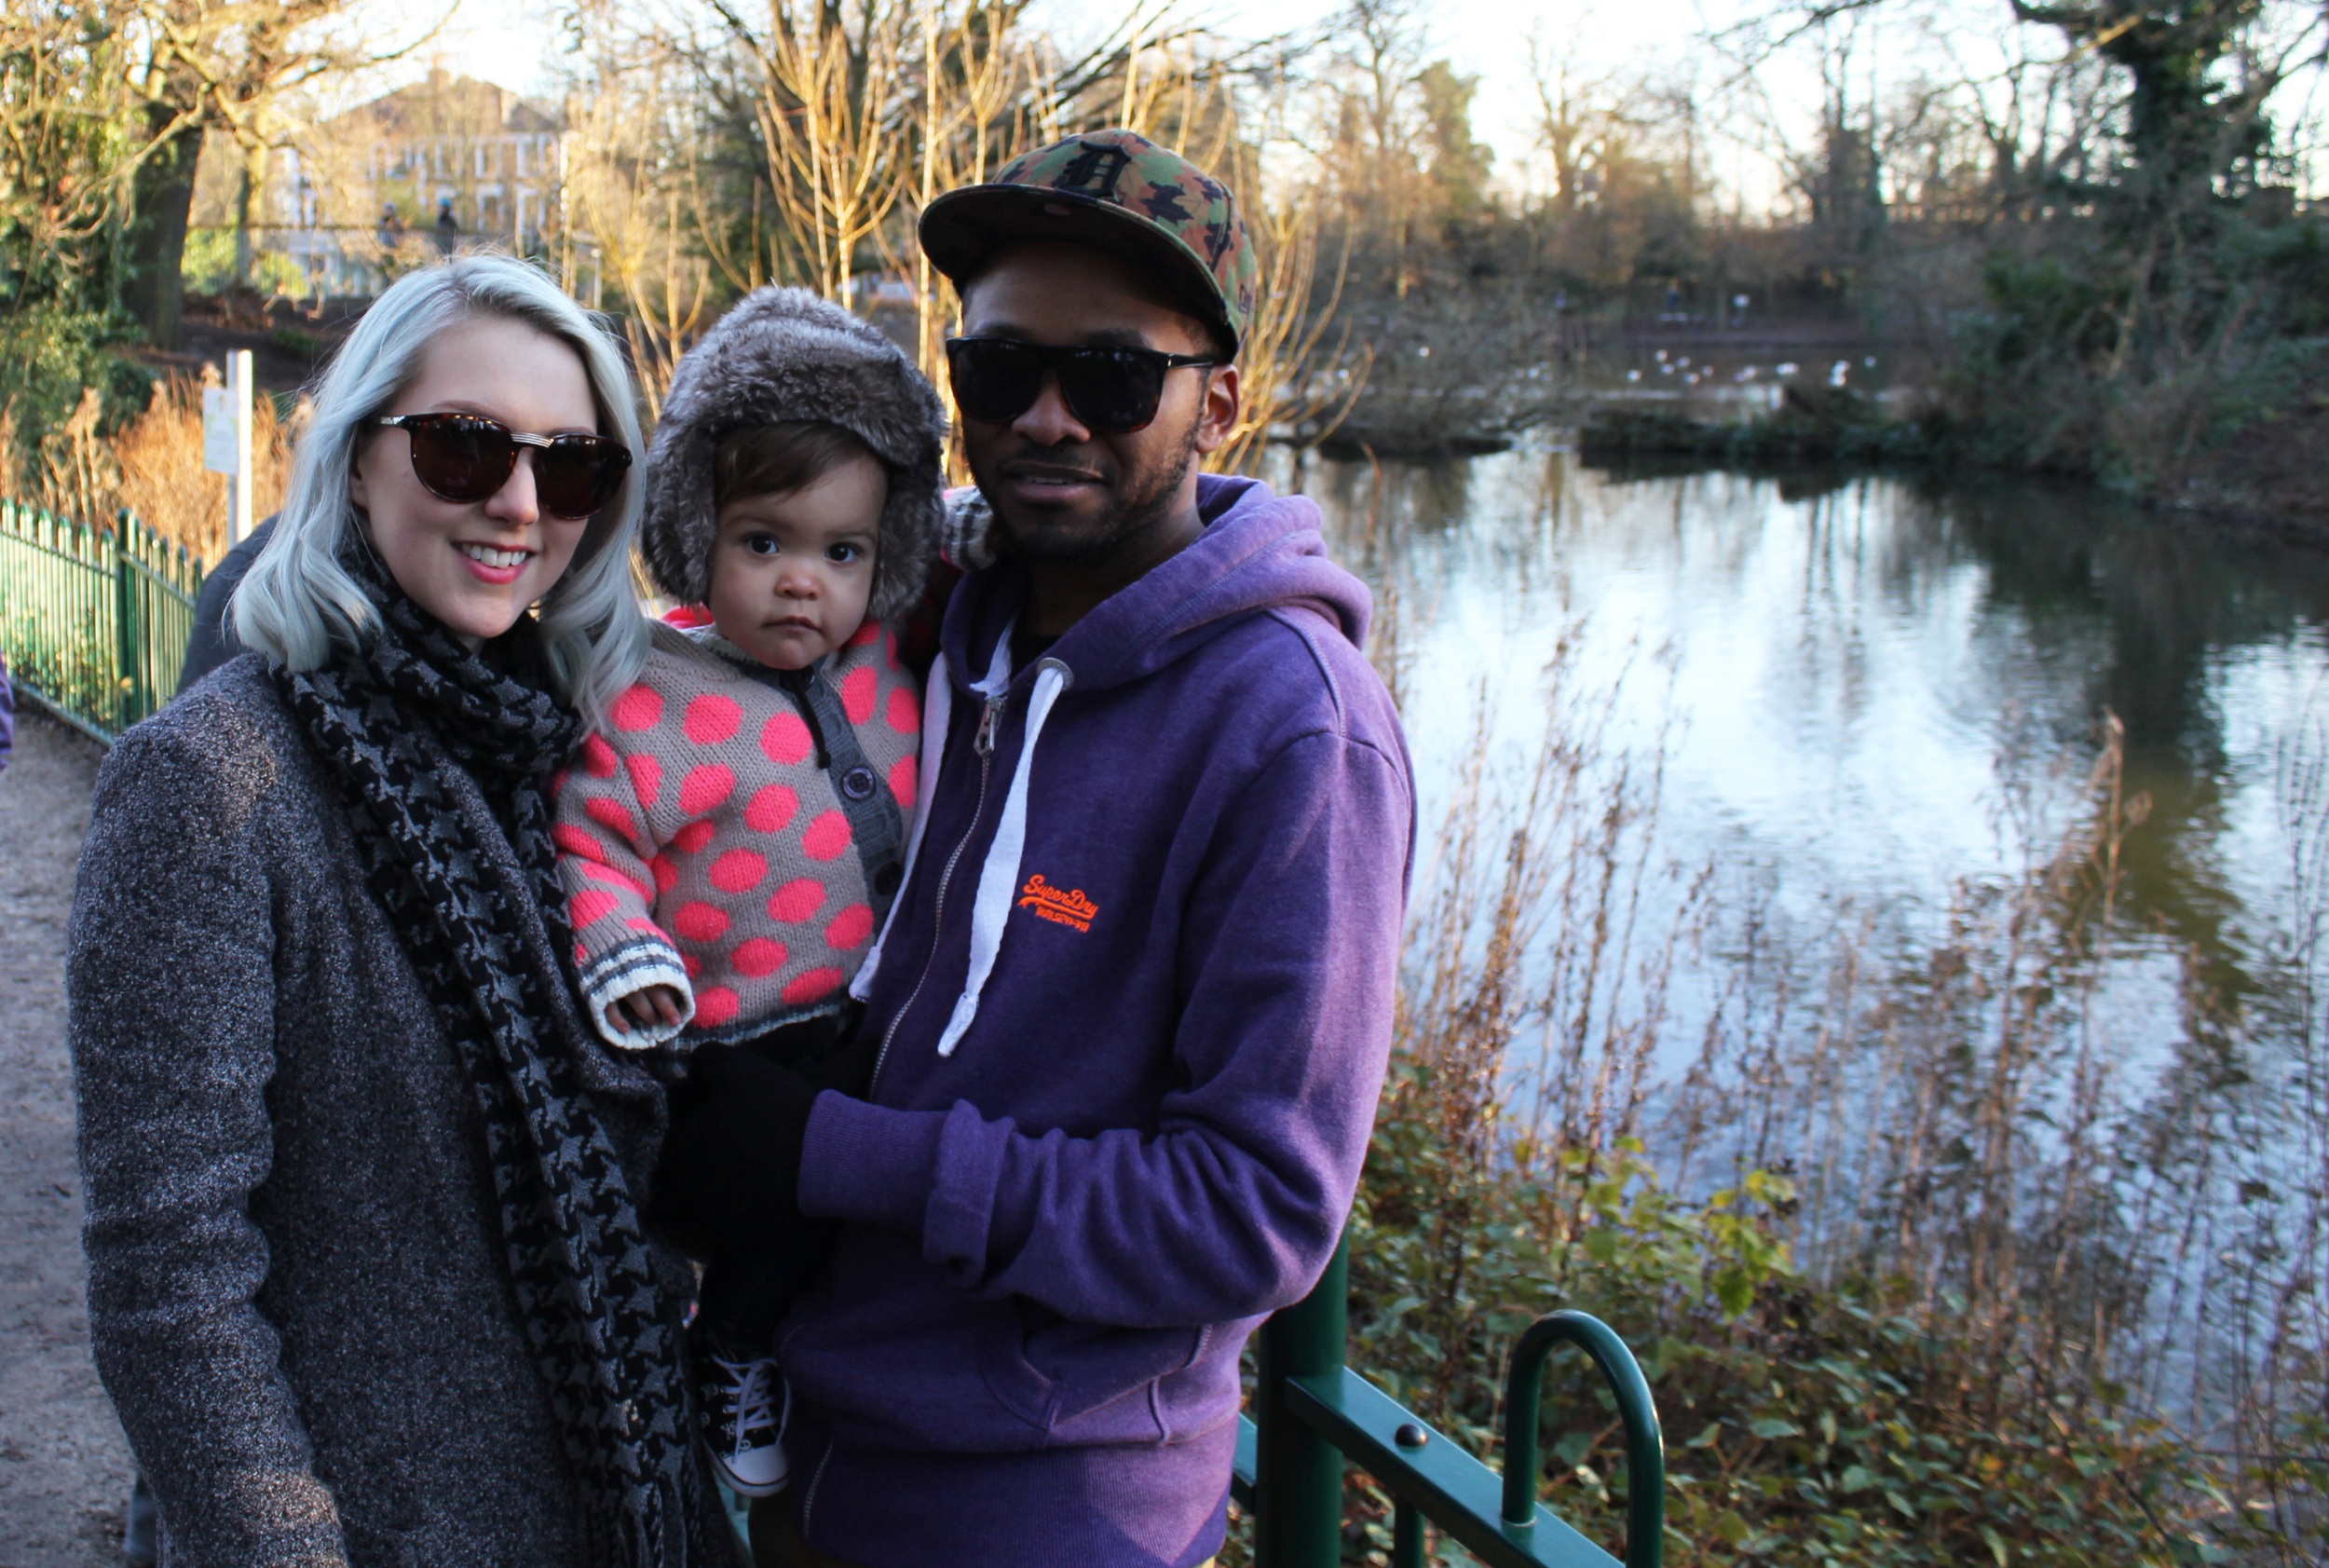 Family day in the grounds of the original Crystal Palace